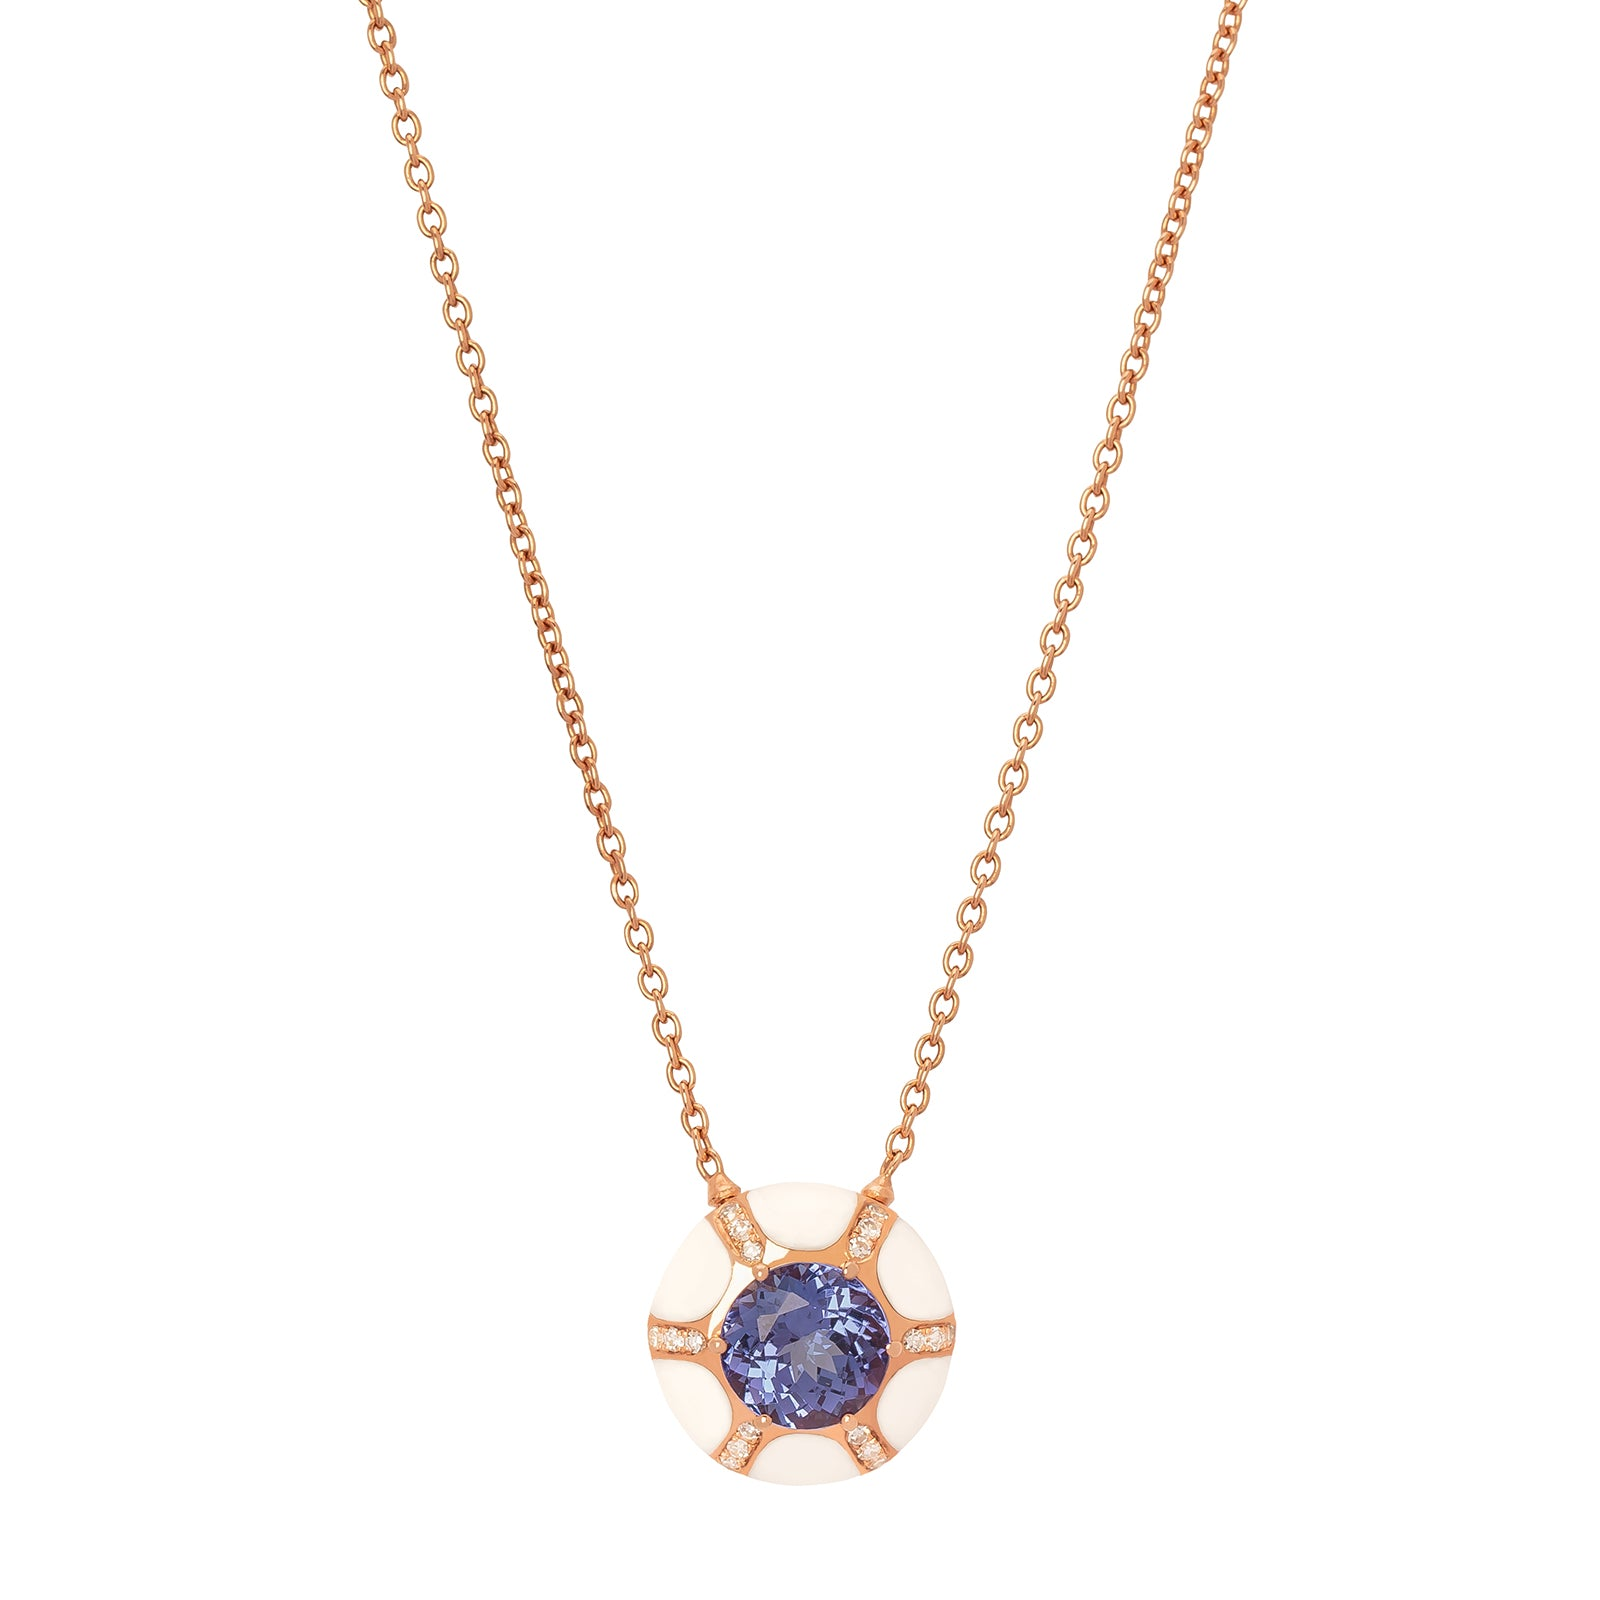 Selim Mouzannar Sea Flowers Pendant Necklace - Tanzanite - Necklaces - Broken English Jewelry